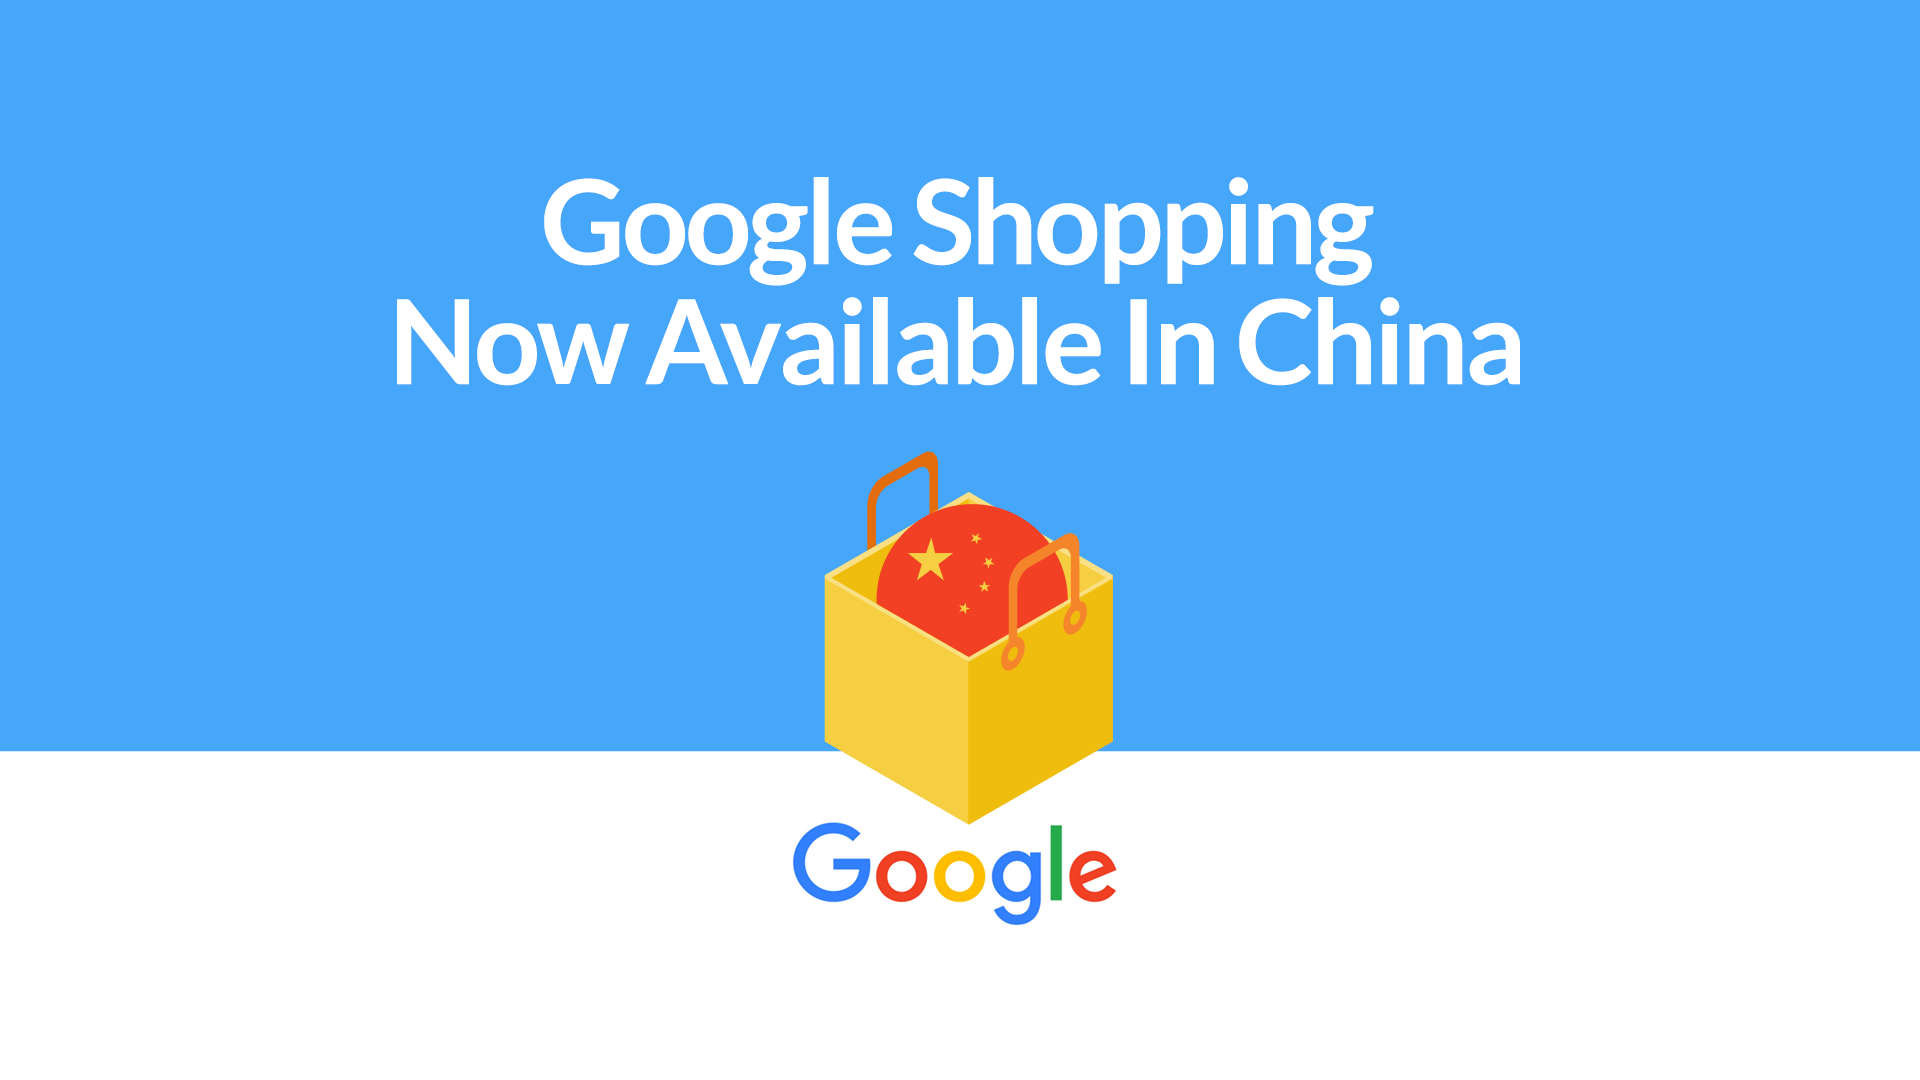 Google Shopping is now available in China